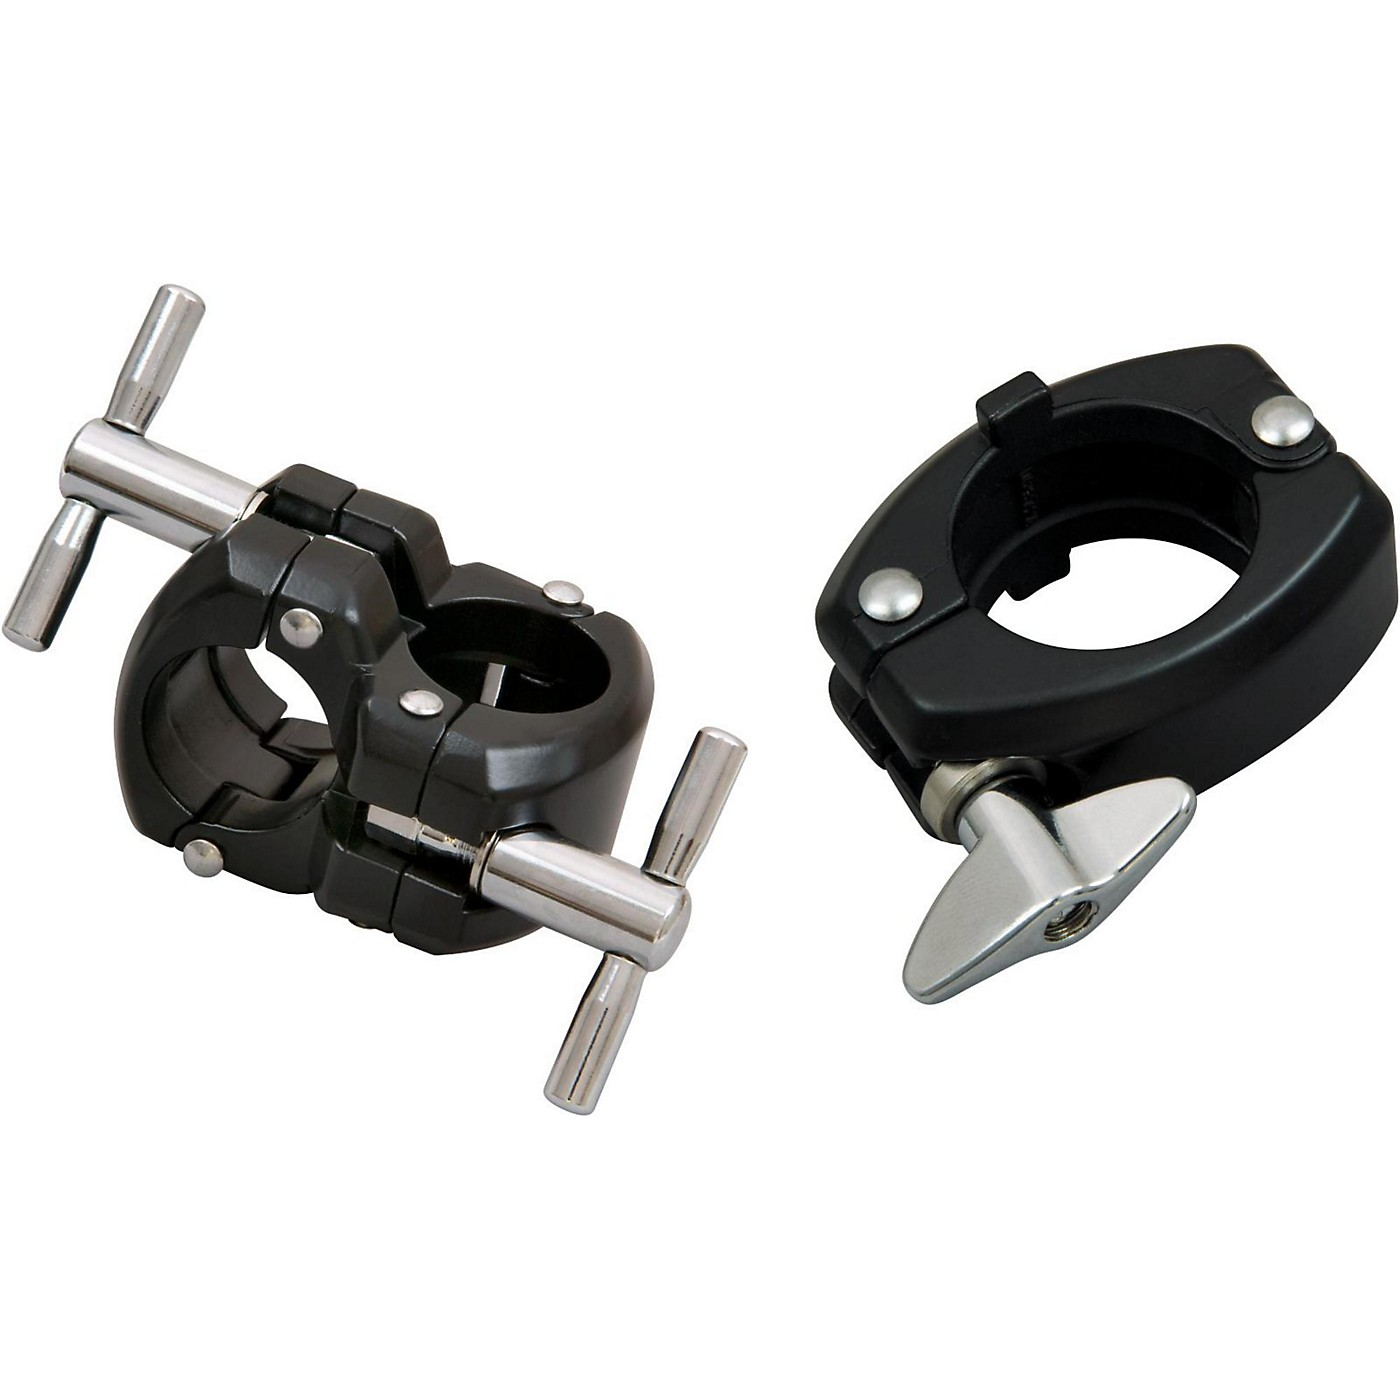 Sound Percussion Labs Right-Angle Mount Clamp with Memory Lock thumbnail